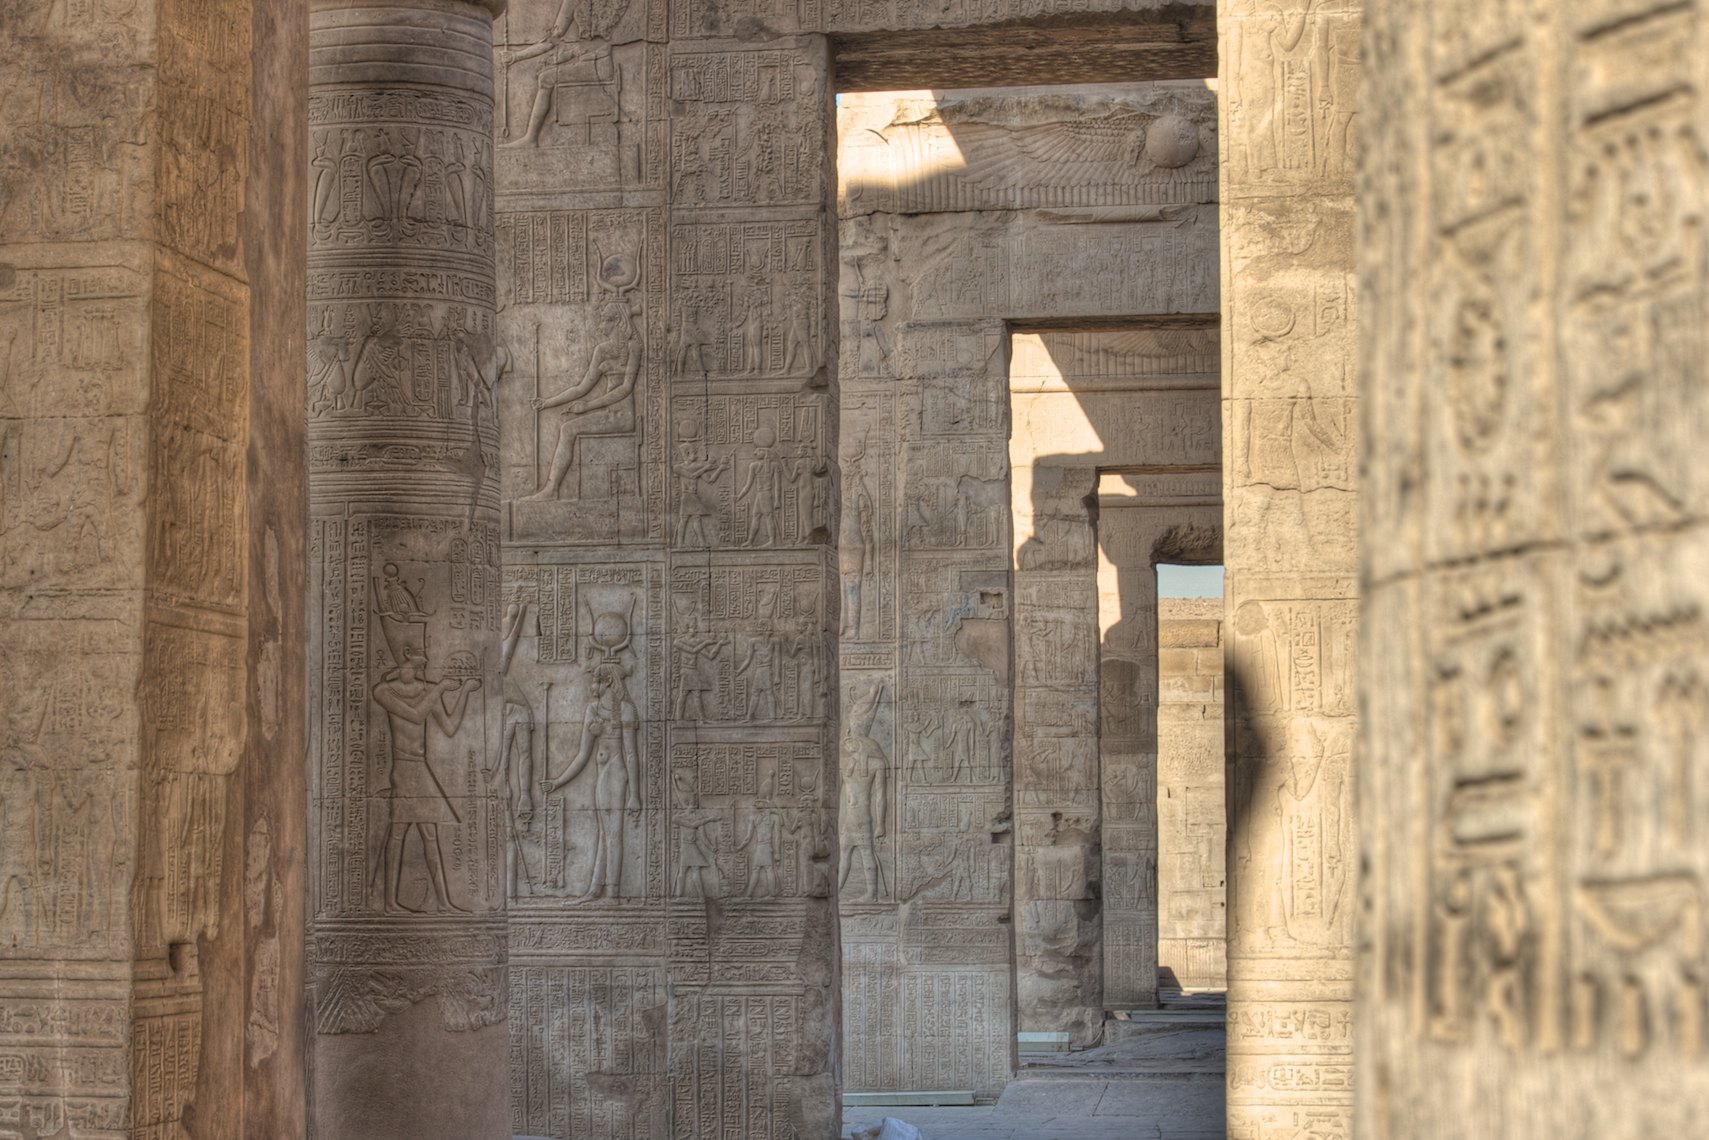 Barth_Egypt_temple 005.jpg